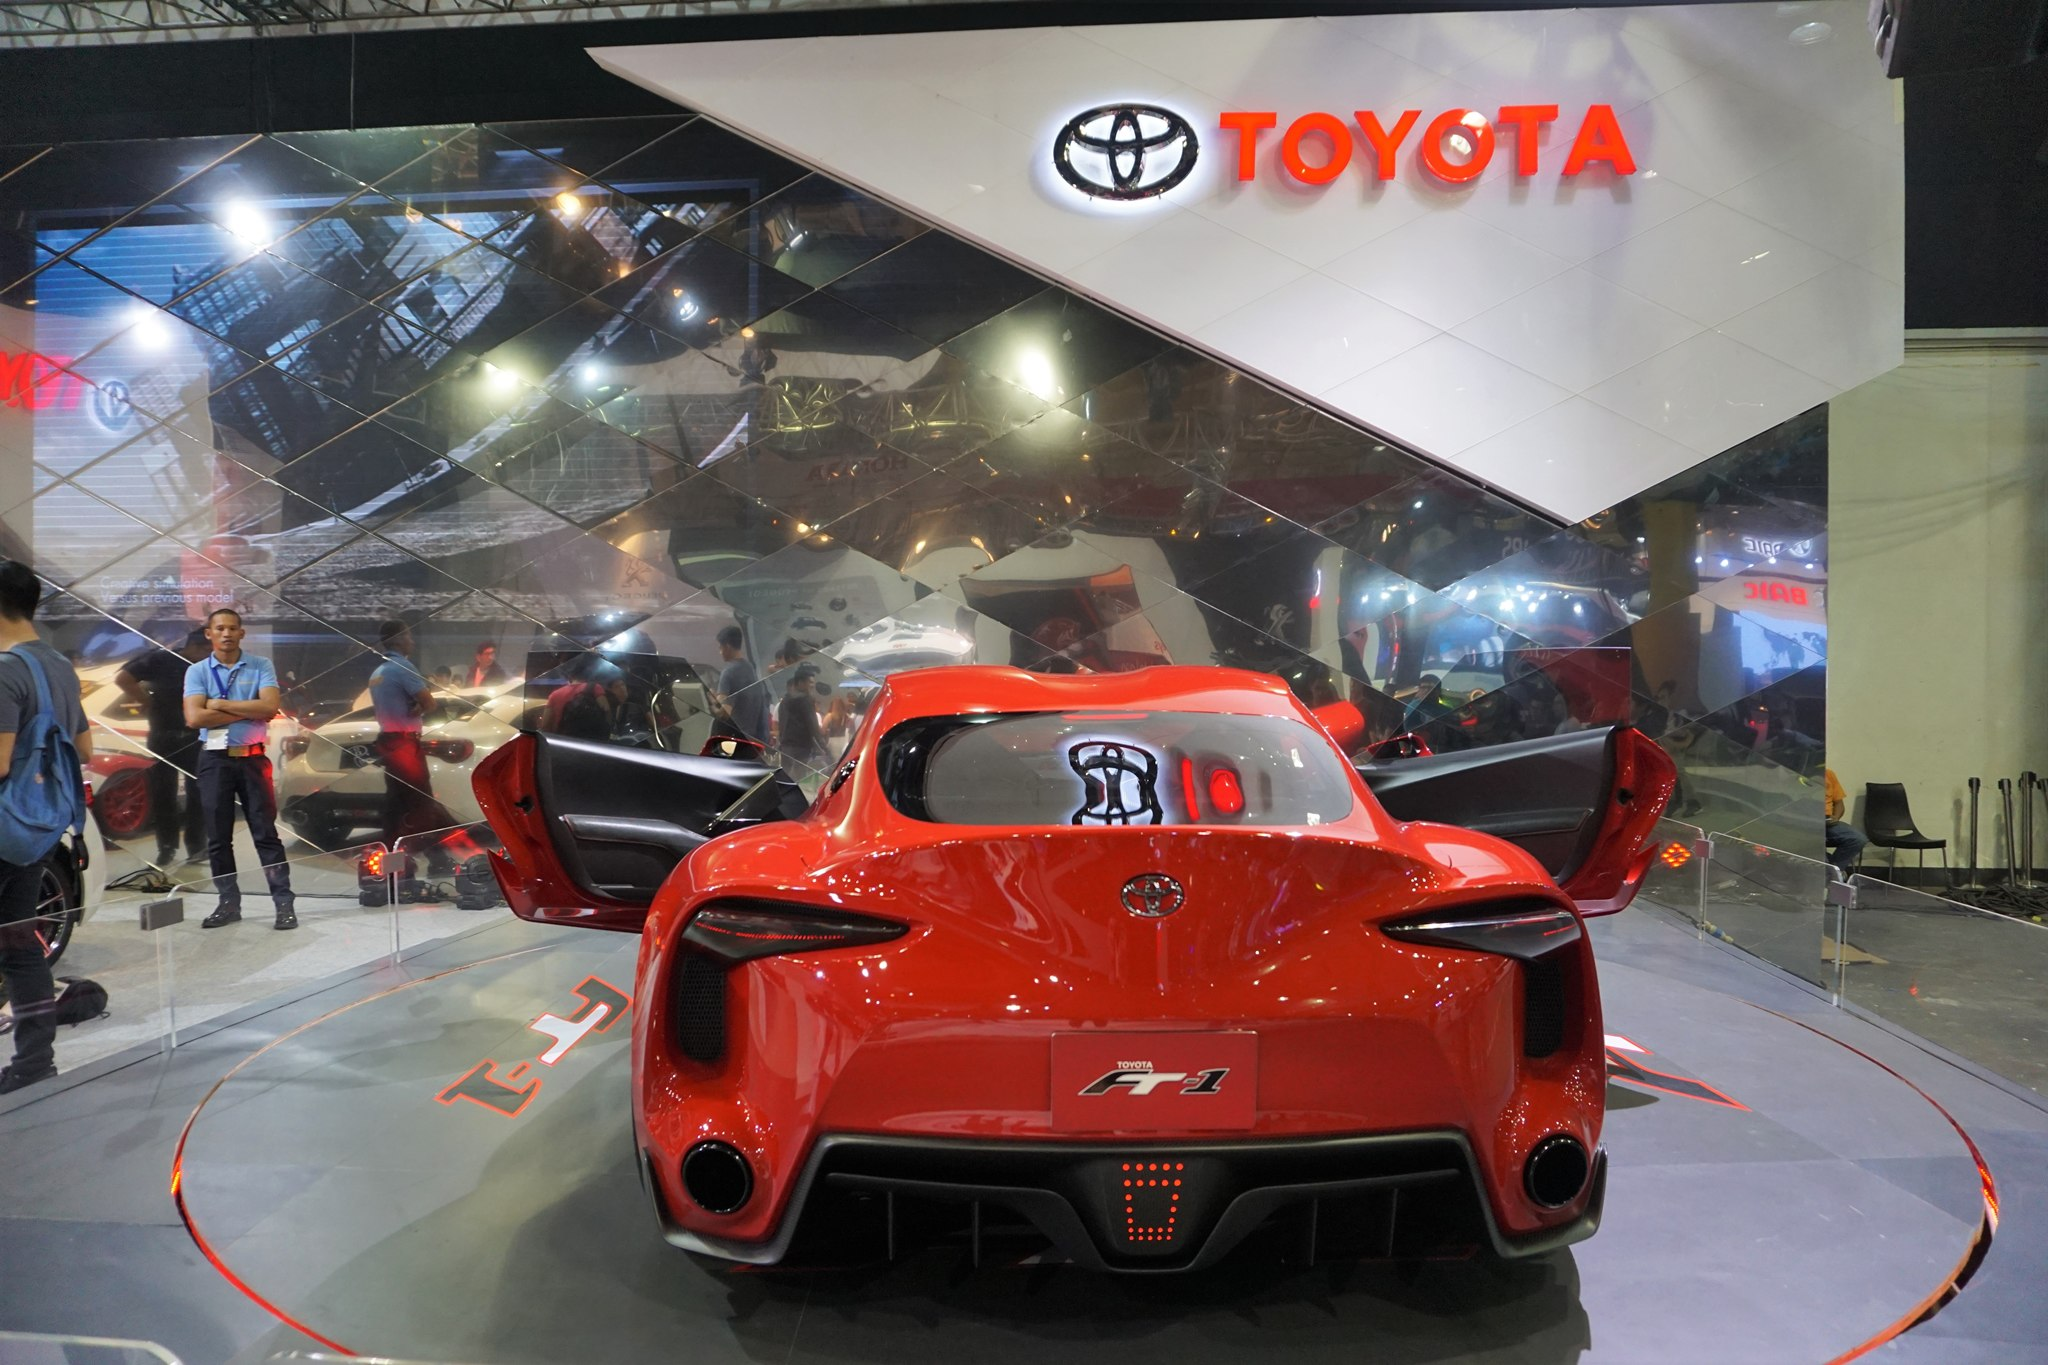 Toyota Ft 1 Concept Car At The Philippine